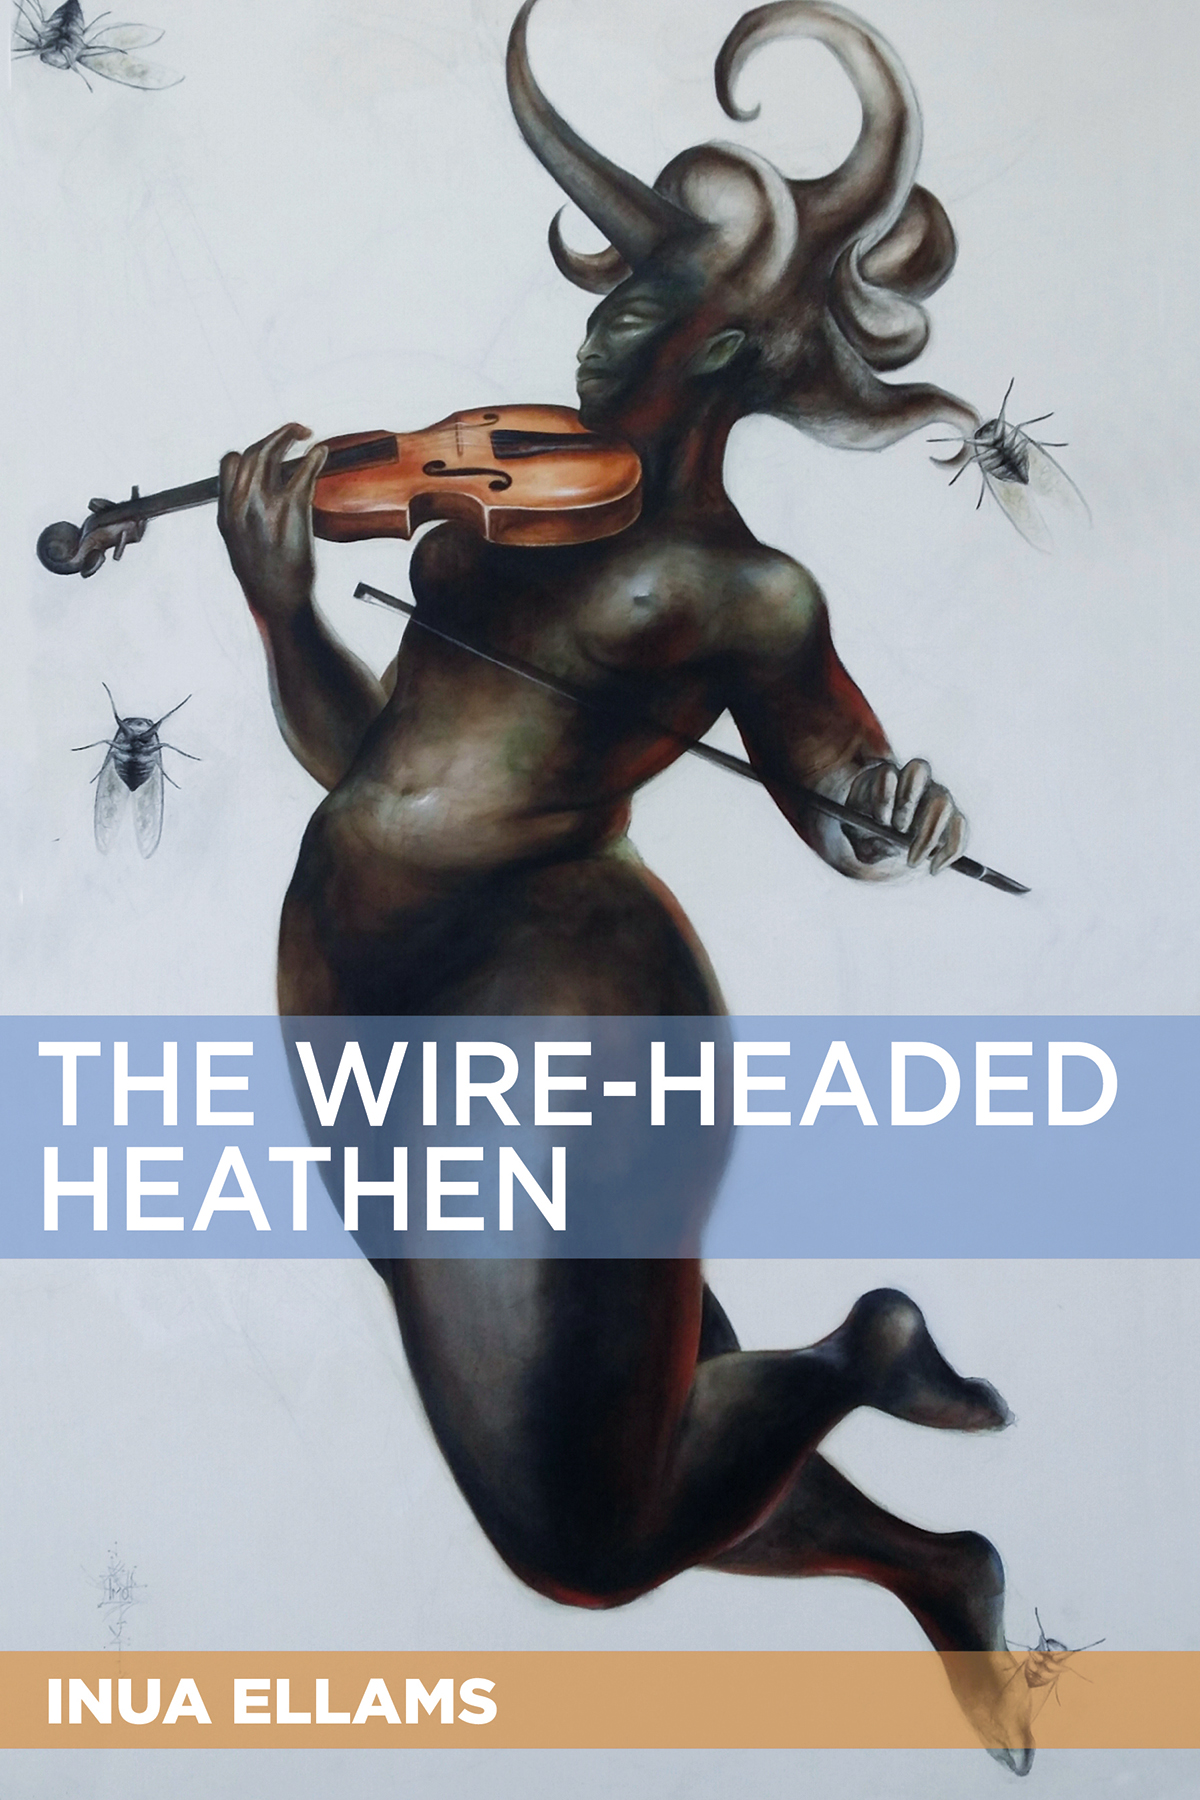 The Wire-Headed Heathen